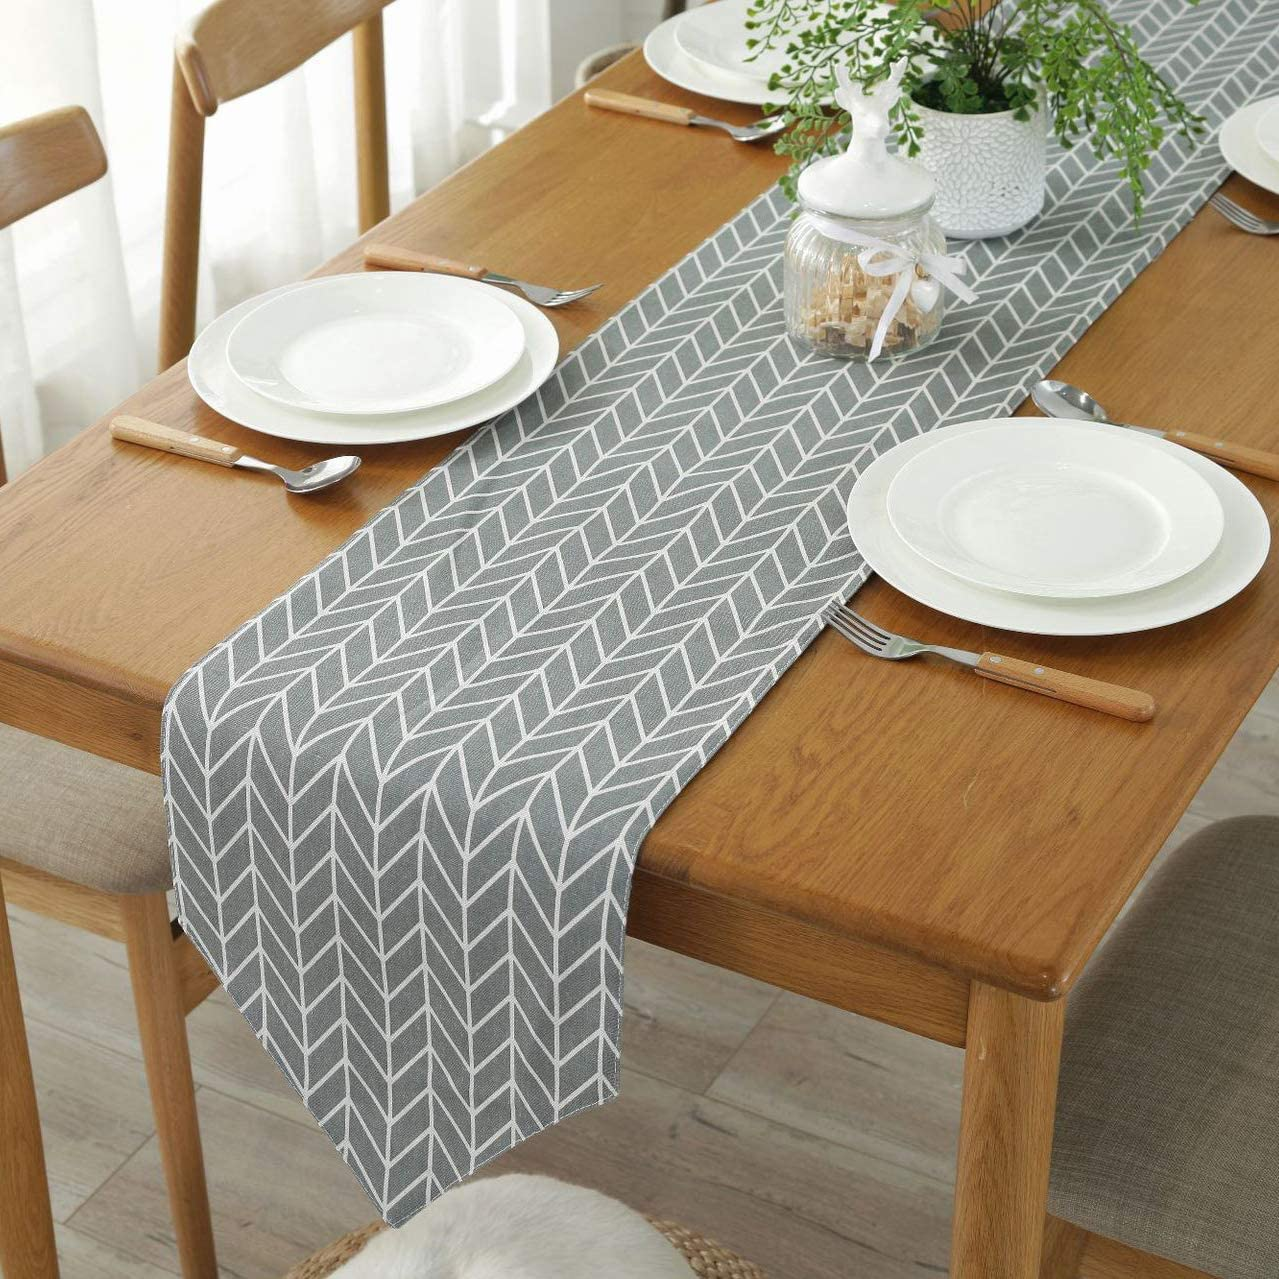 30x160cm MUCHENG Polyester Geometric Jacquard Table Runners for Wedding Christmas Home Decor Party Supplies